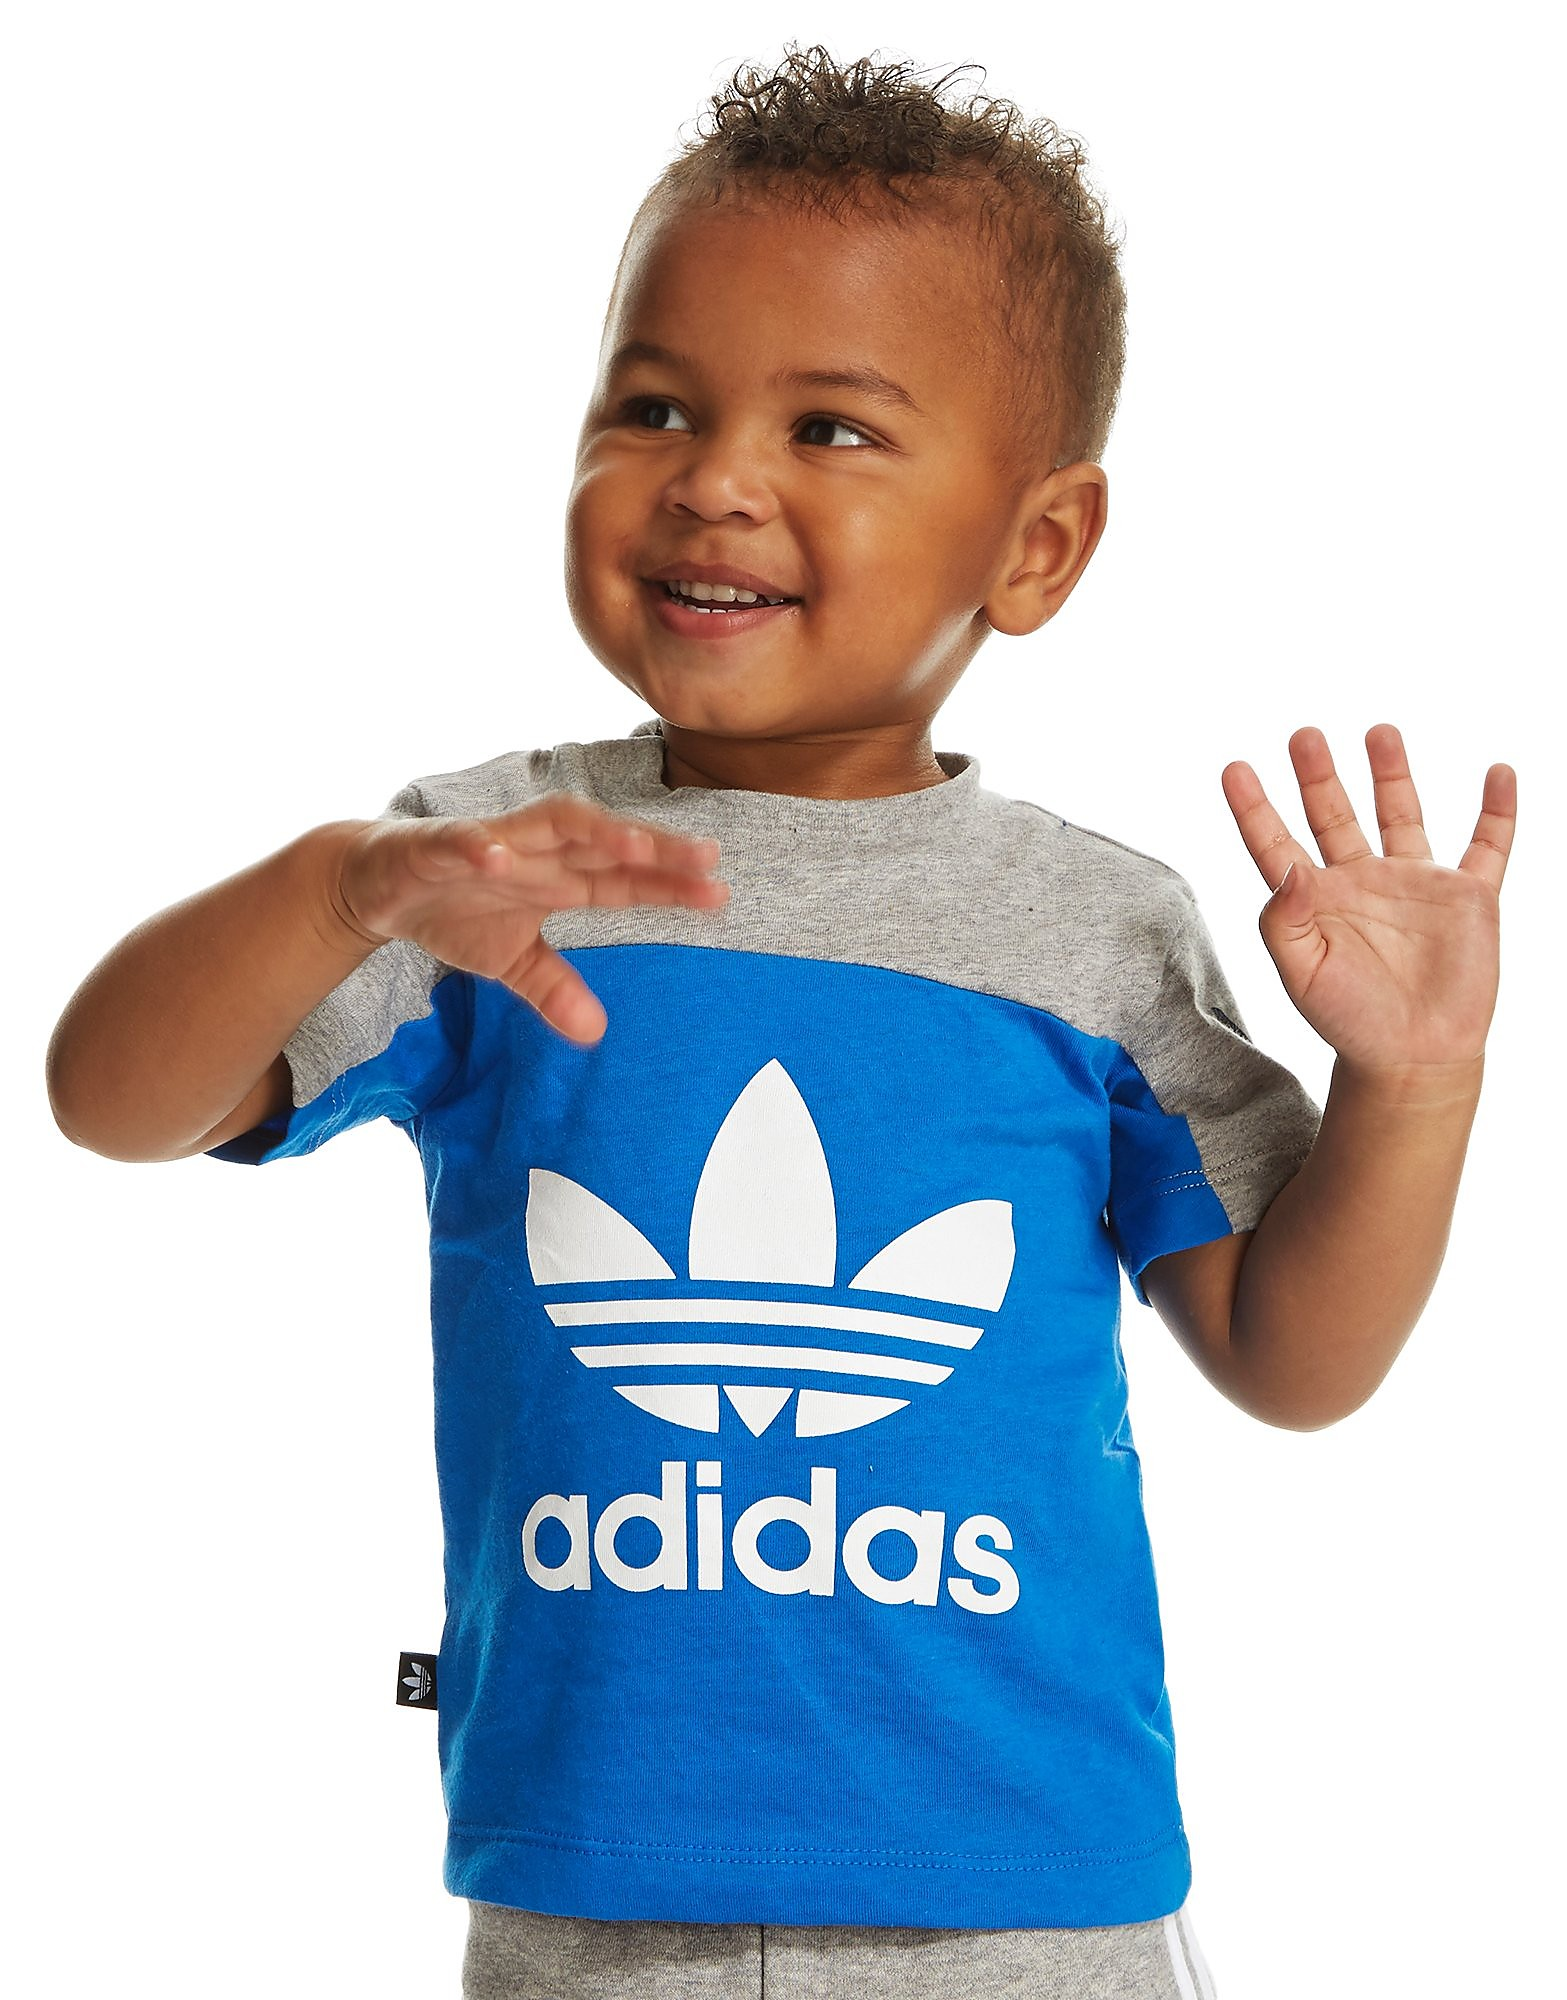 adidas Originals Trefoil Colour Block T-Shirt Infant